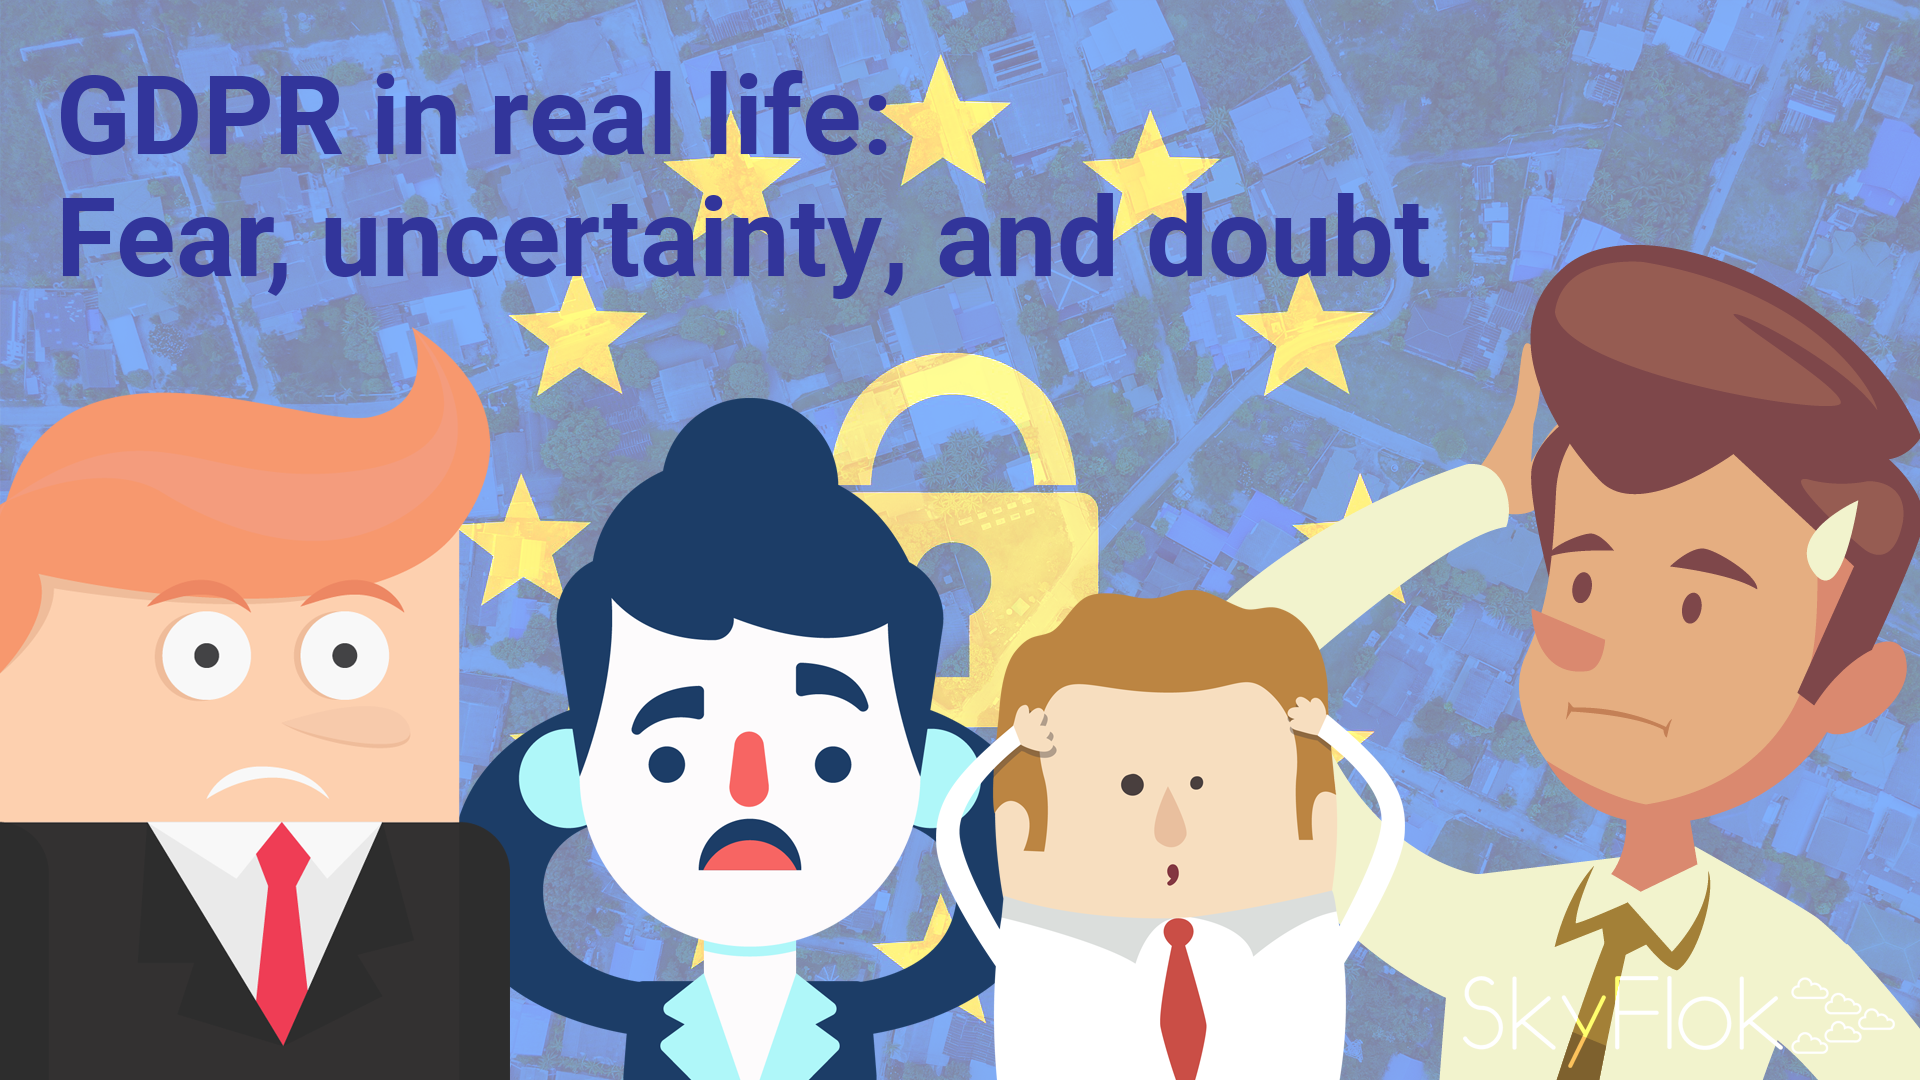 GDPR in real life: Fear, uncertainty, and doubt